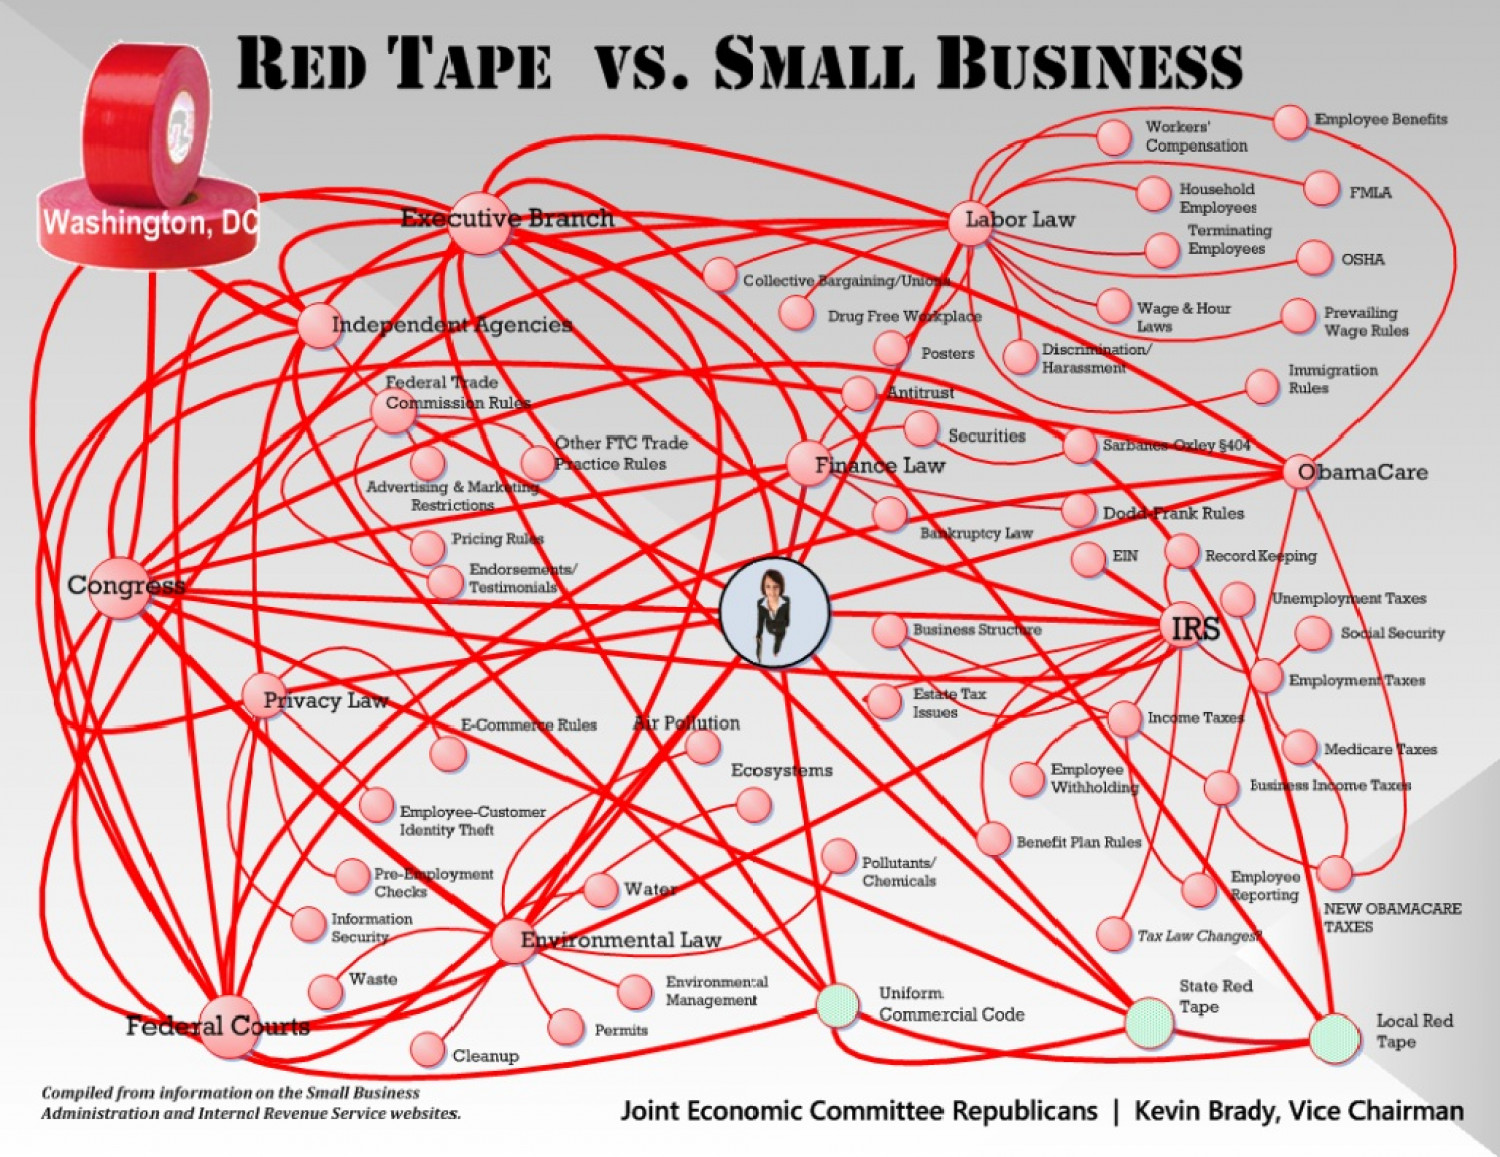 Red Tape vs. Small Business Infographic